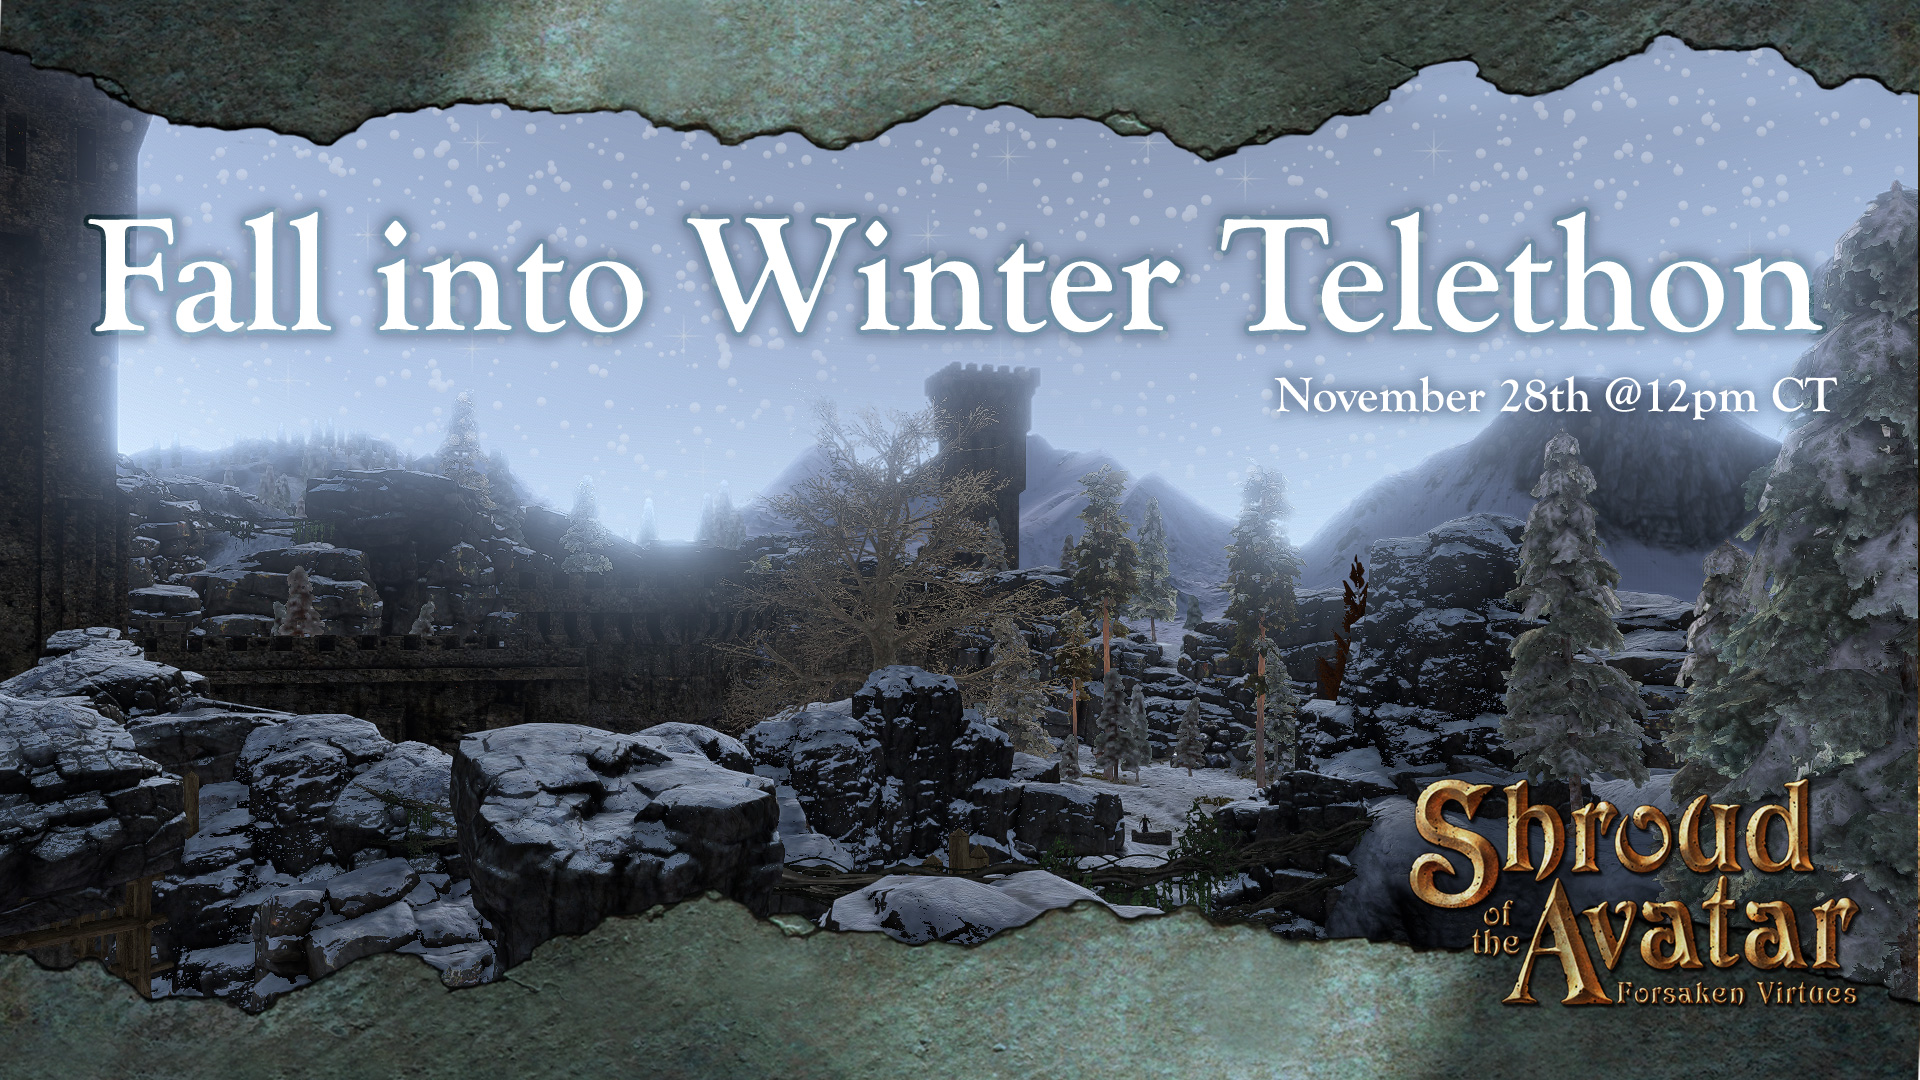 Fall into Winter Telethon